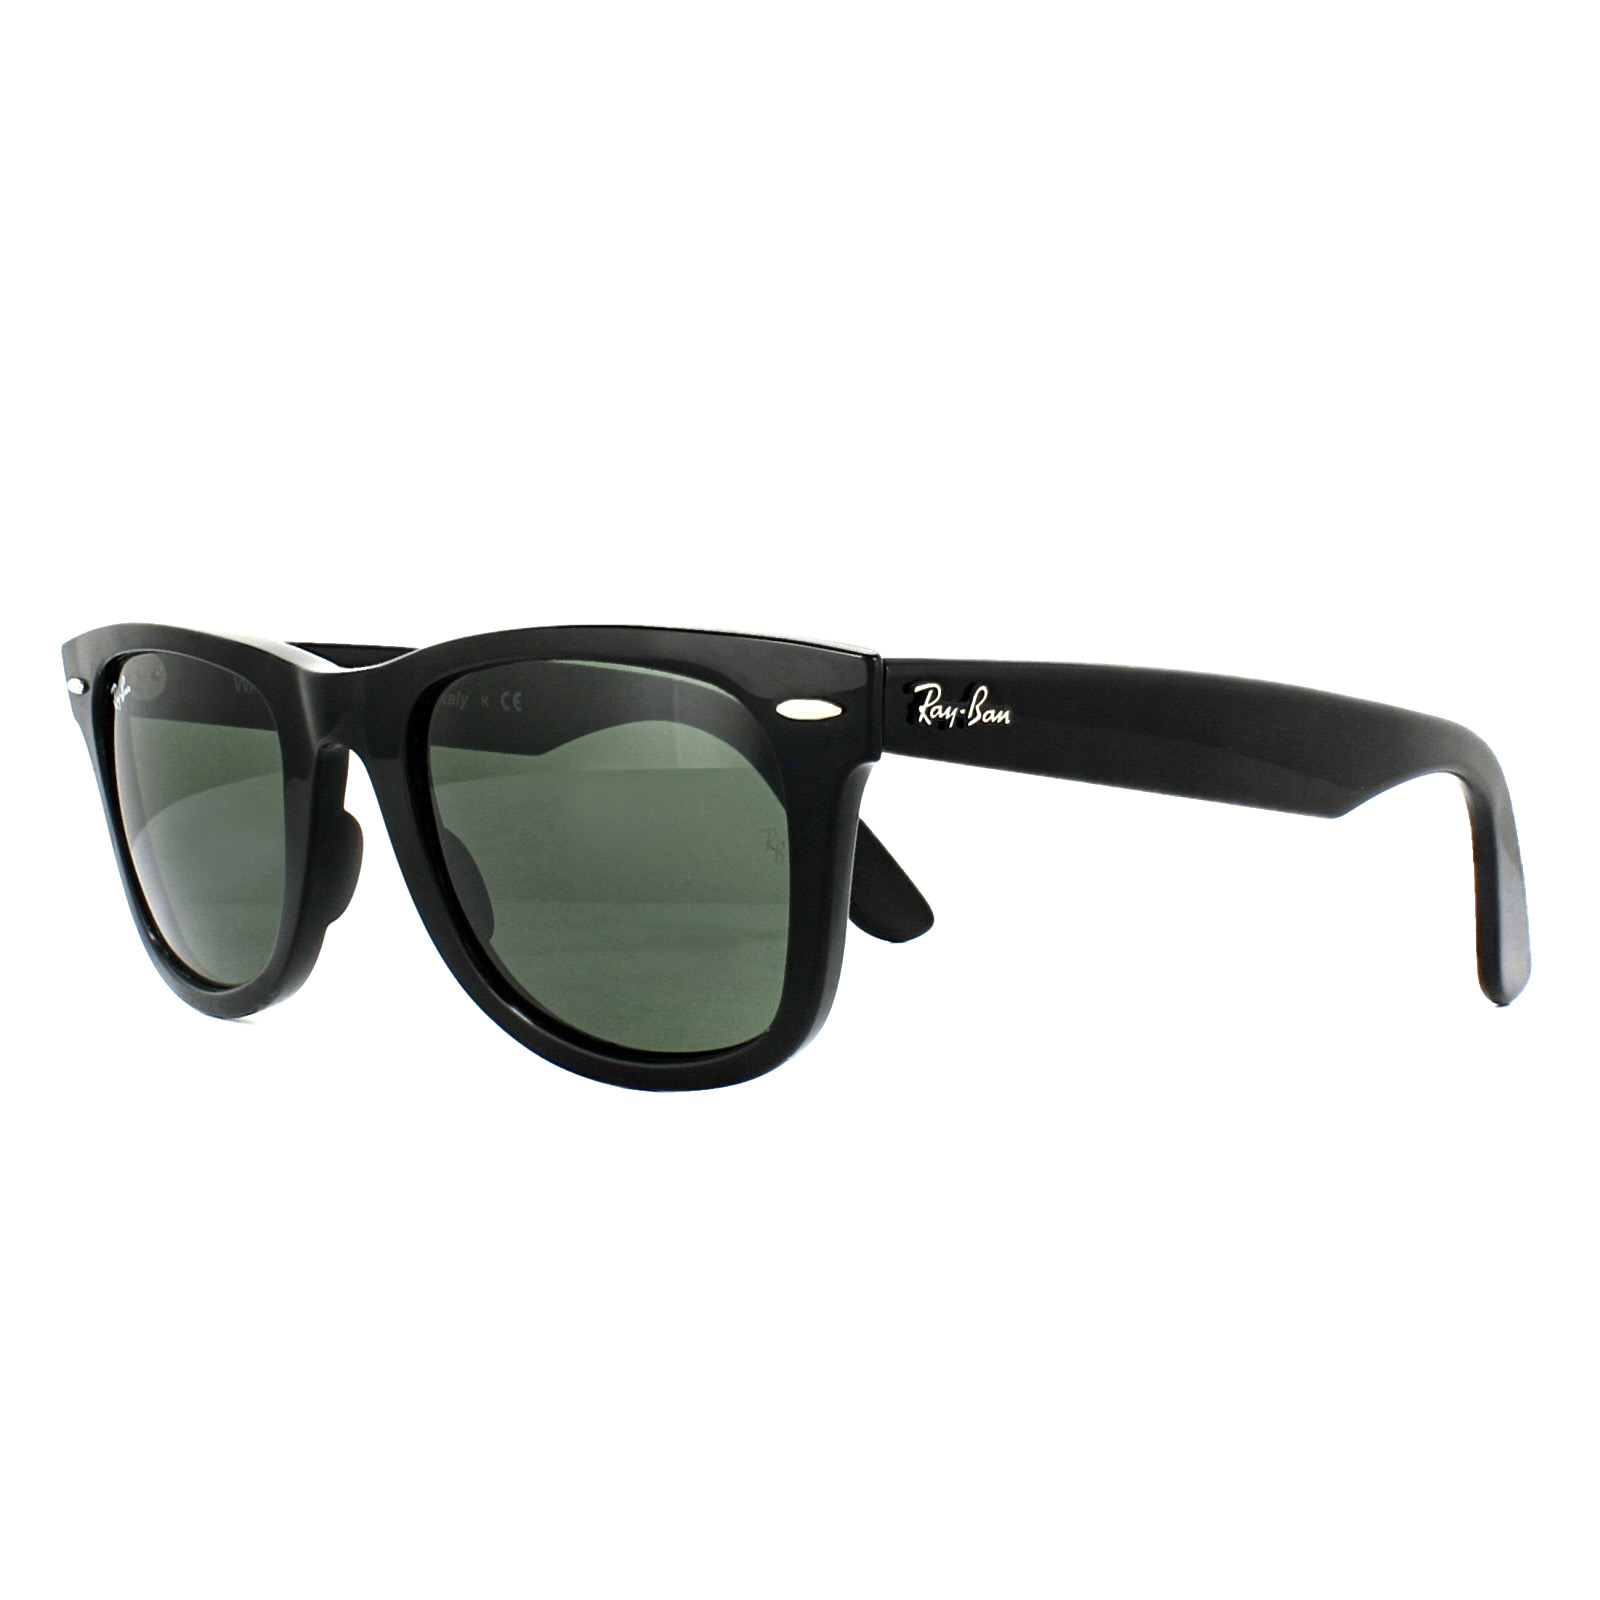 cee27744b3989 Sentinel Ray-Ban Sunglasses Wayfarer Ease RB4340 601 Black Green G-15